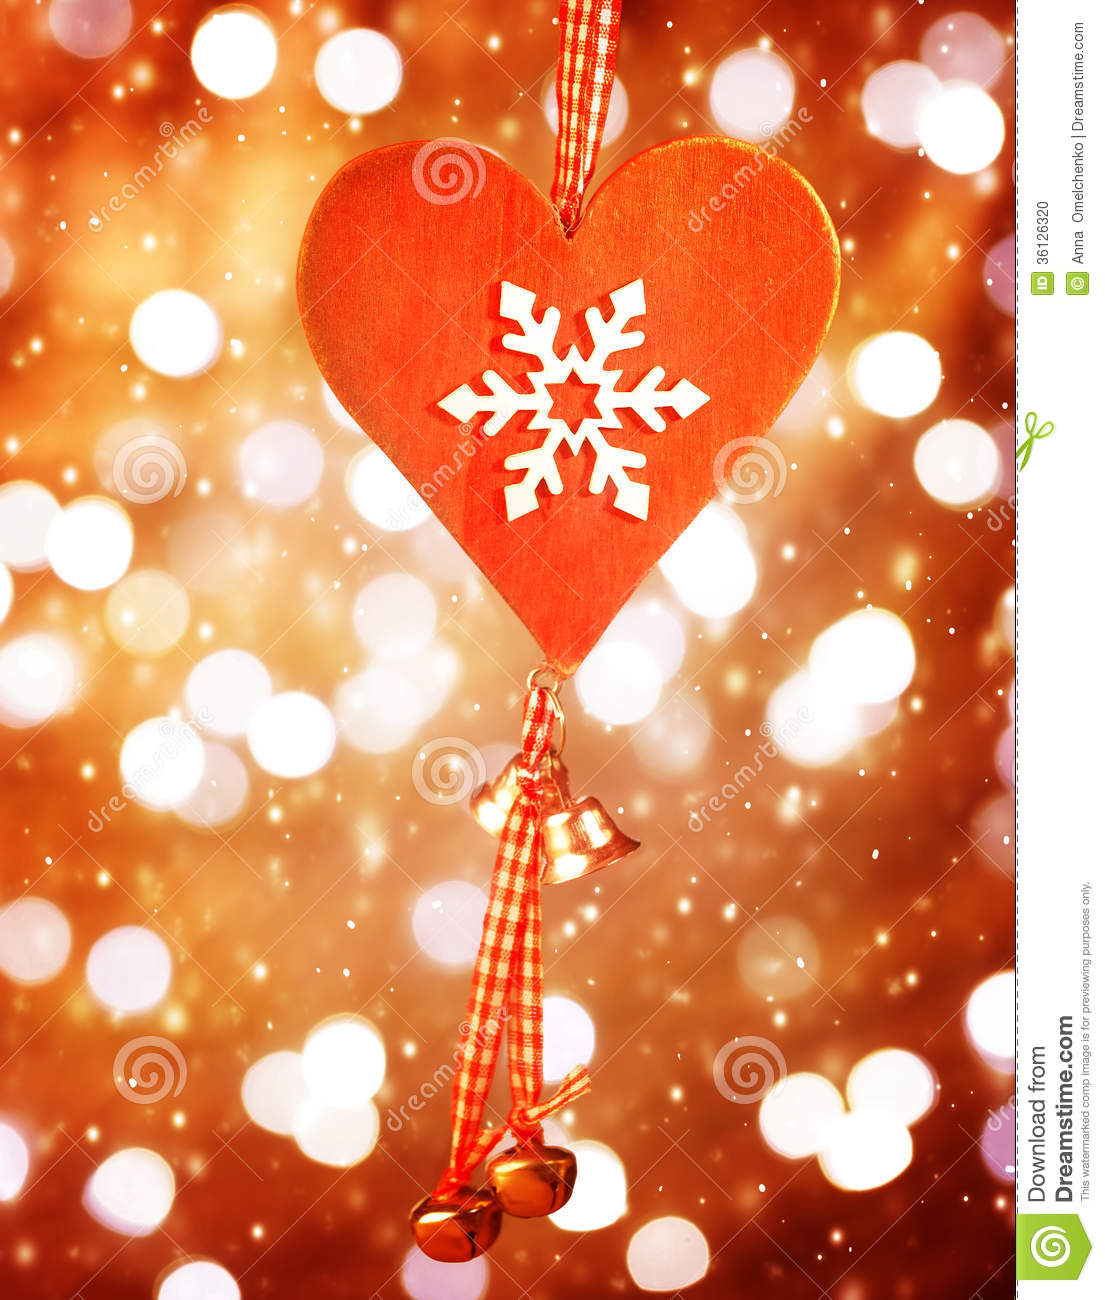 Heart shaped decor for christmas stock photo image 36126320 for Heart shaped decorations home